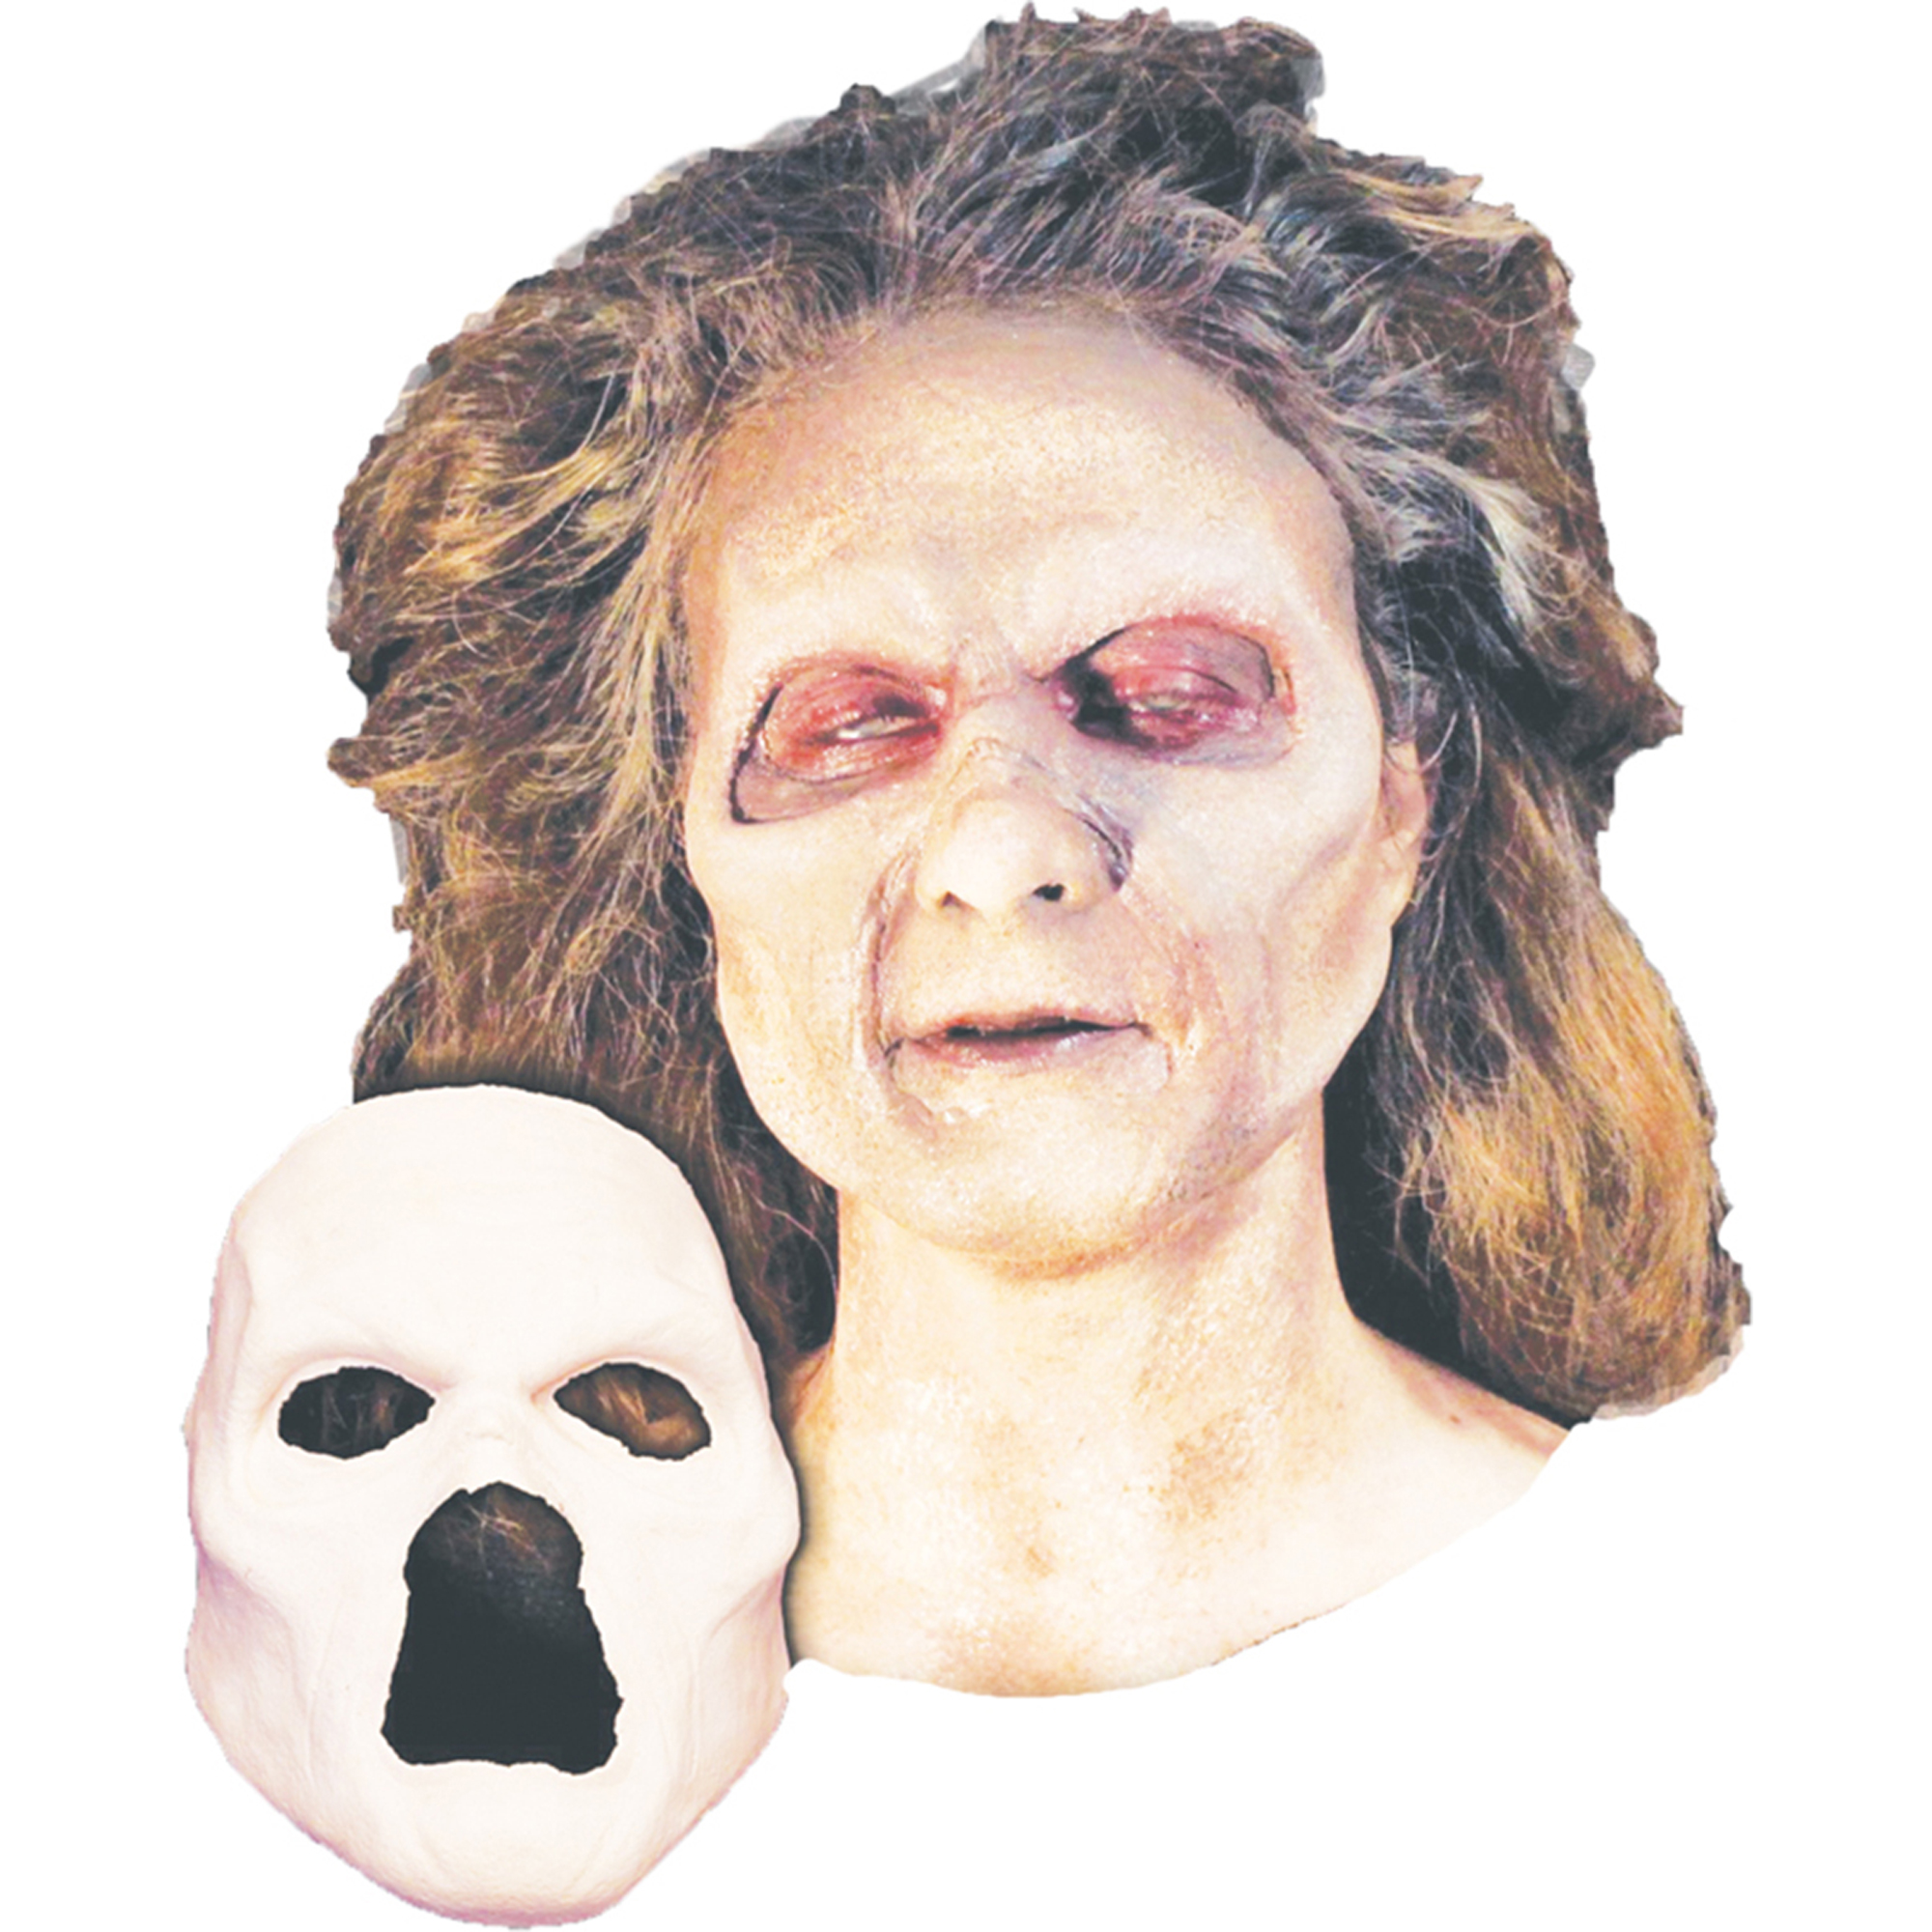 Morris Costumes Undead Zombie Foam Latex Face Costume, Style, HD600143